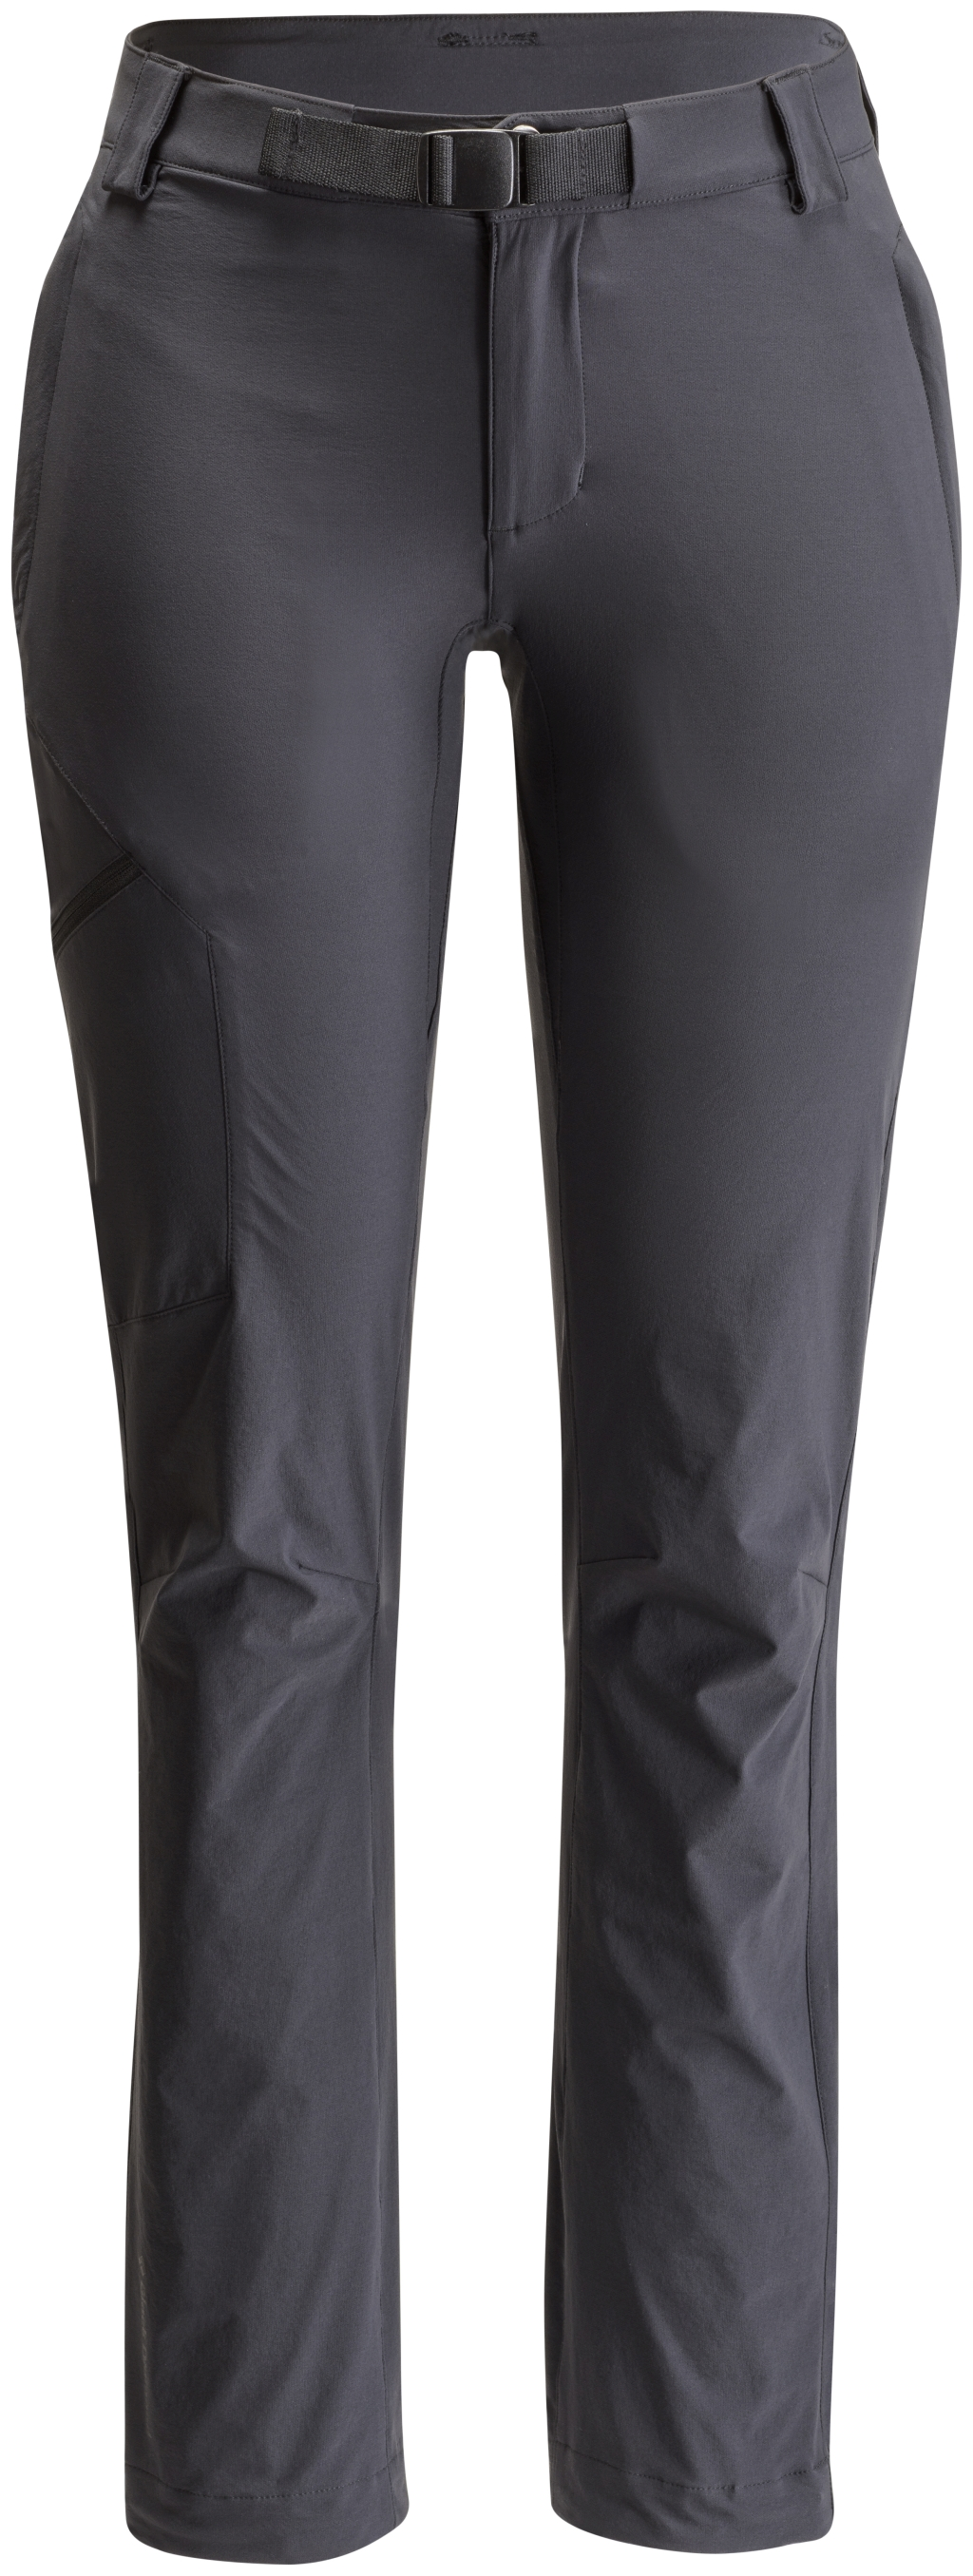 Black Diamond Alpine Softshell Pants - Women's - Smoke - Softshellhosen M